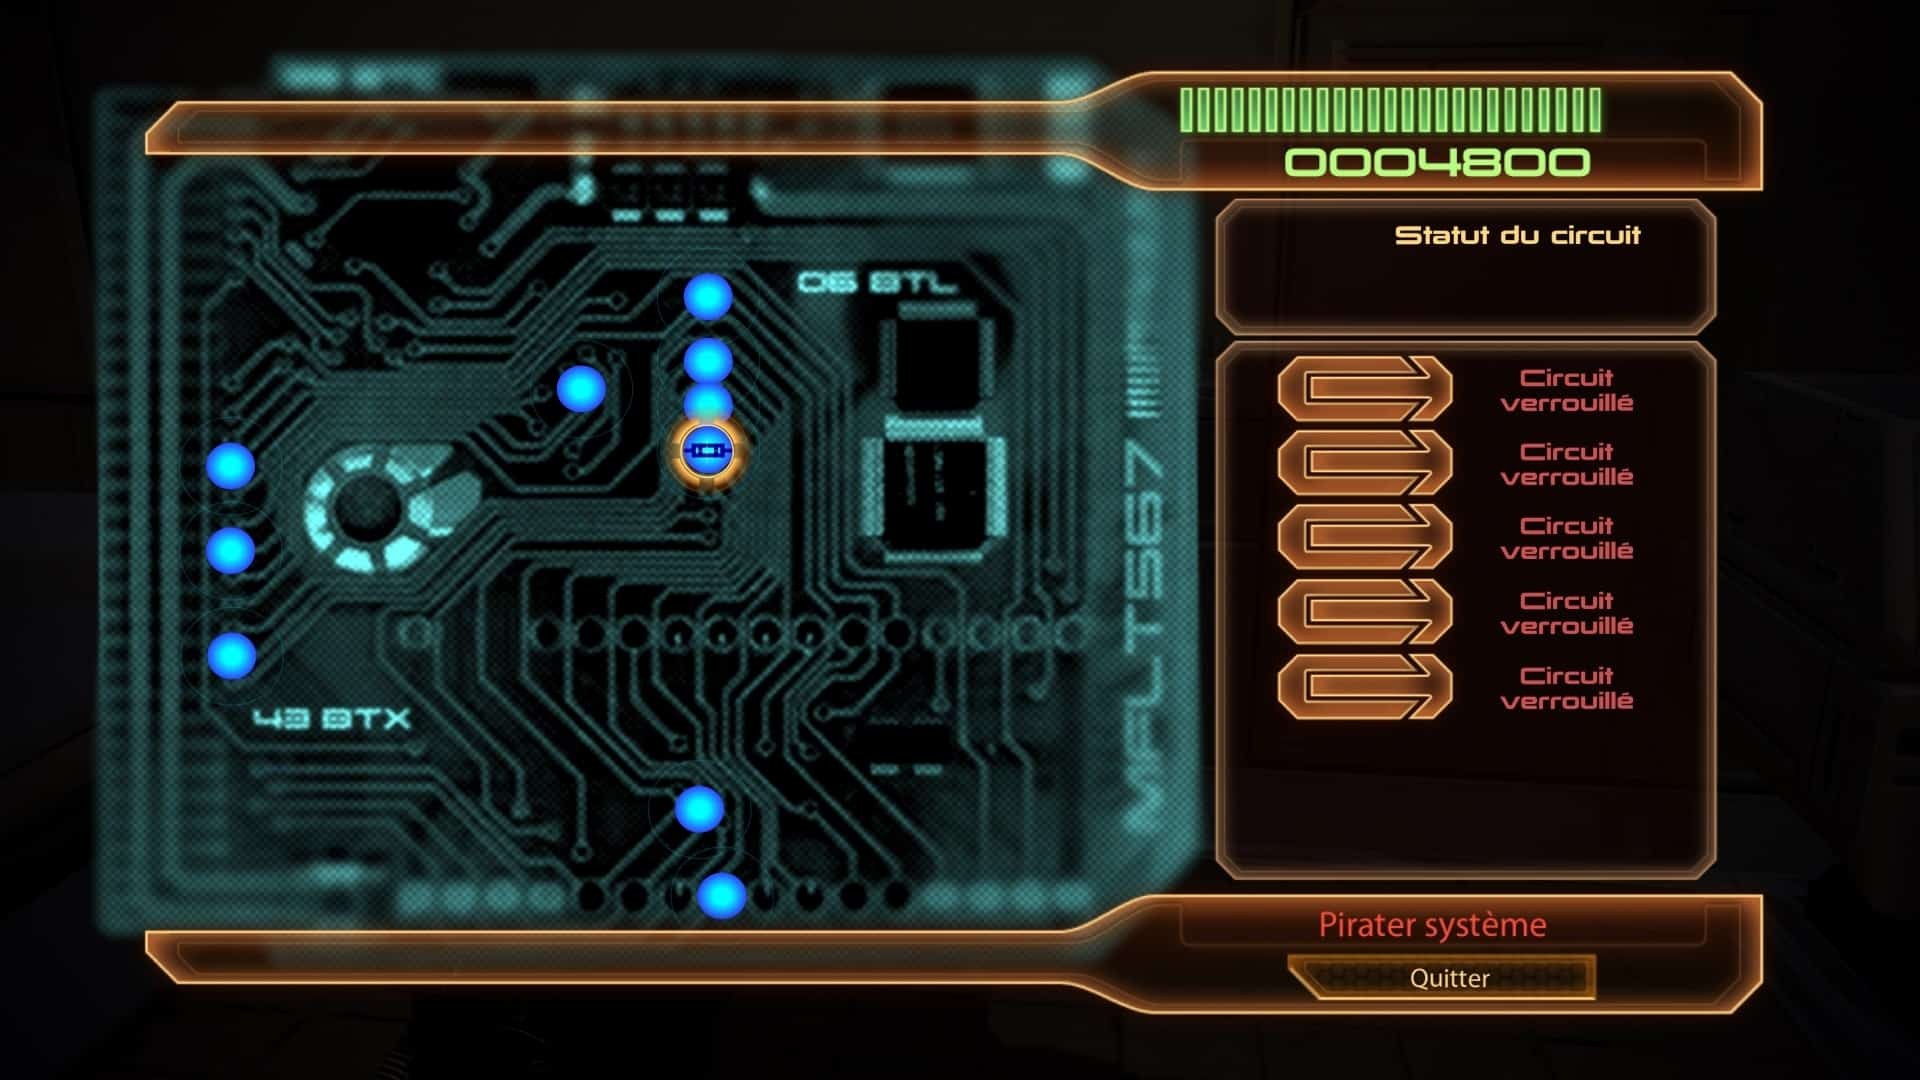 mass-effect-2-piratage-interface-relier-les-circuits-aide-astuce-conseil-guide